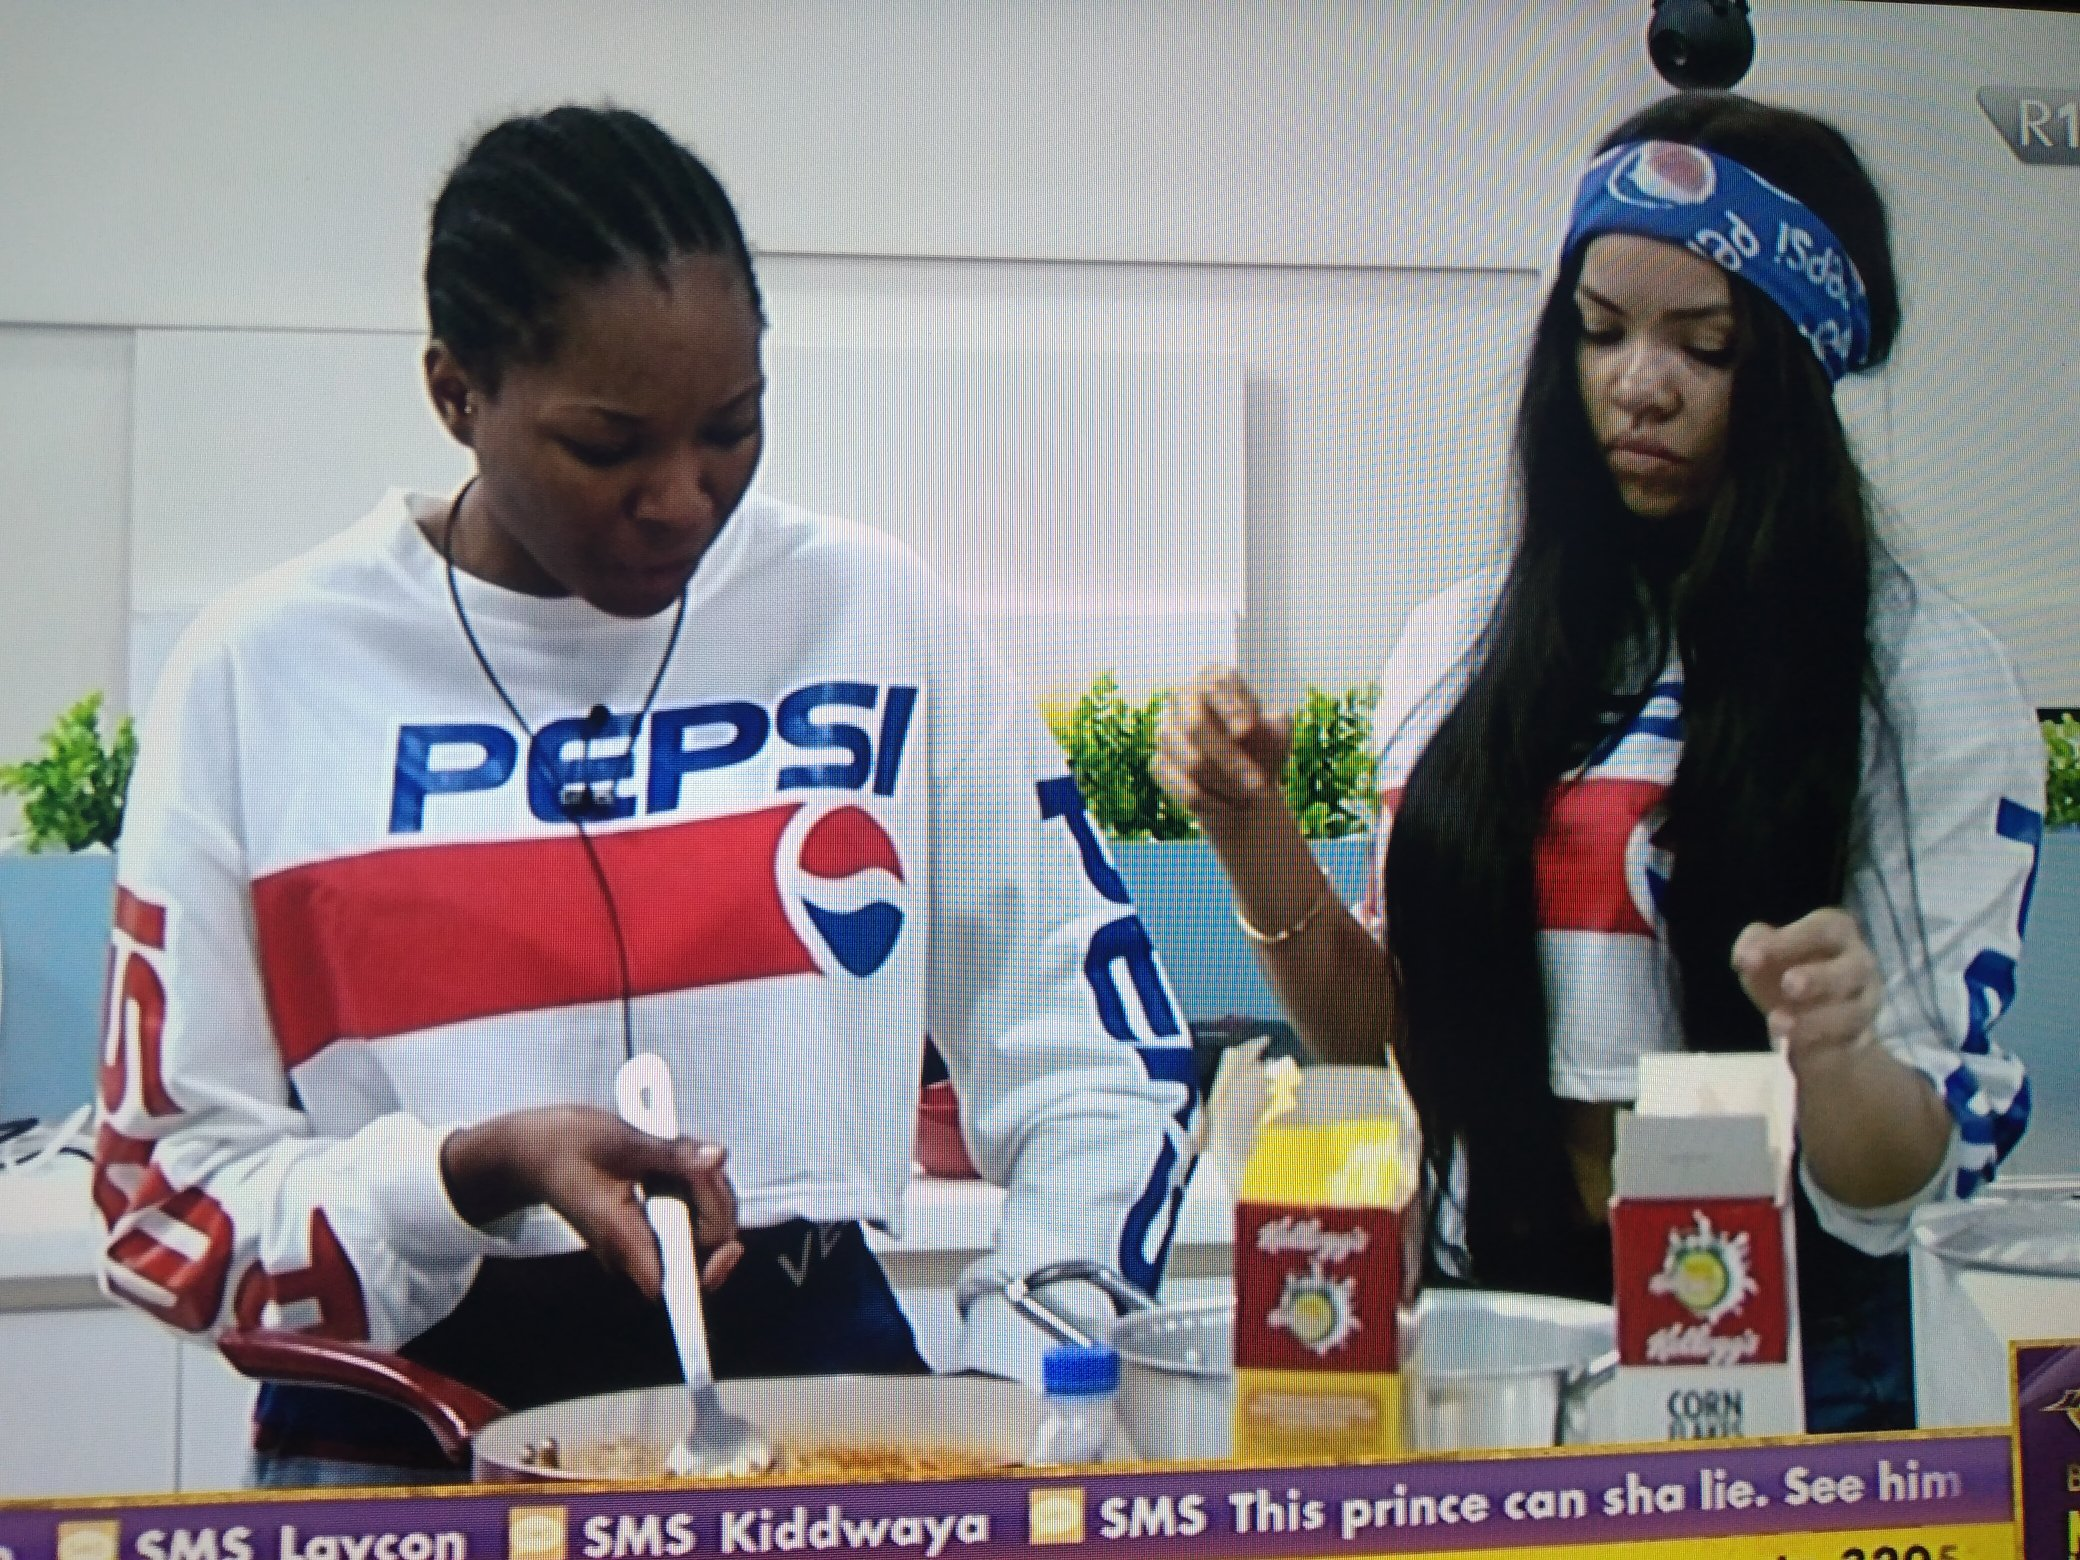 #BBNaija2020 : Nengi and Vee fight in Biggie's house (video)